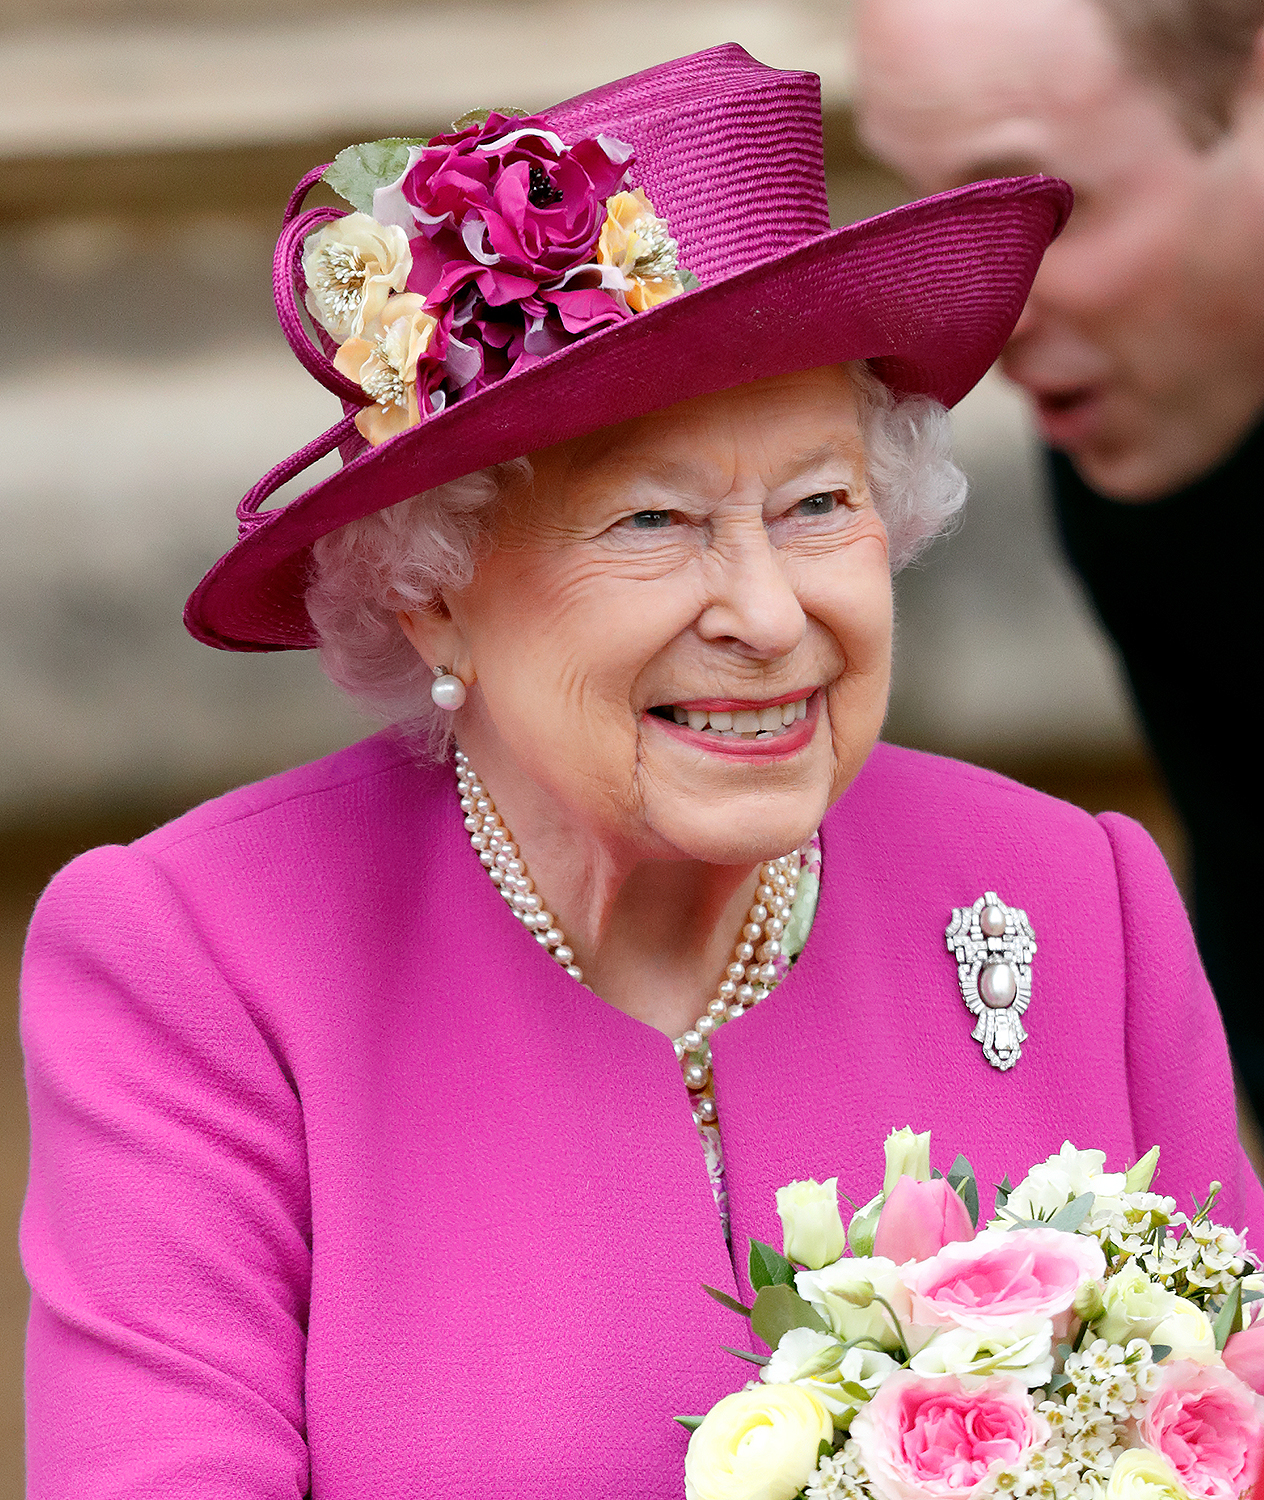 'Easter is not cancelled': Queen delivers second special address